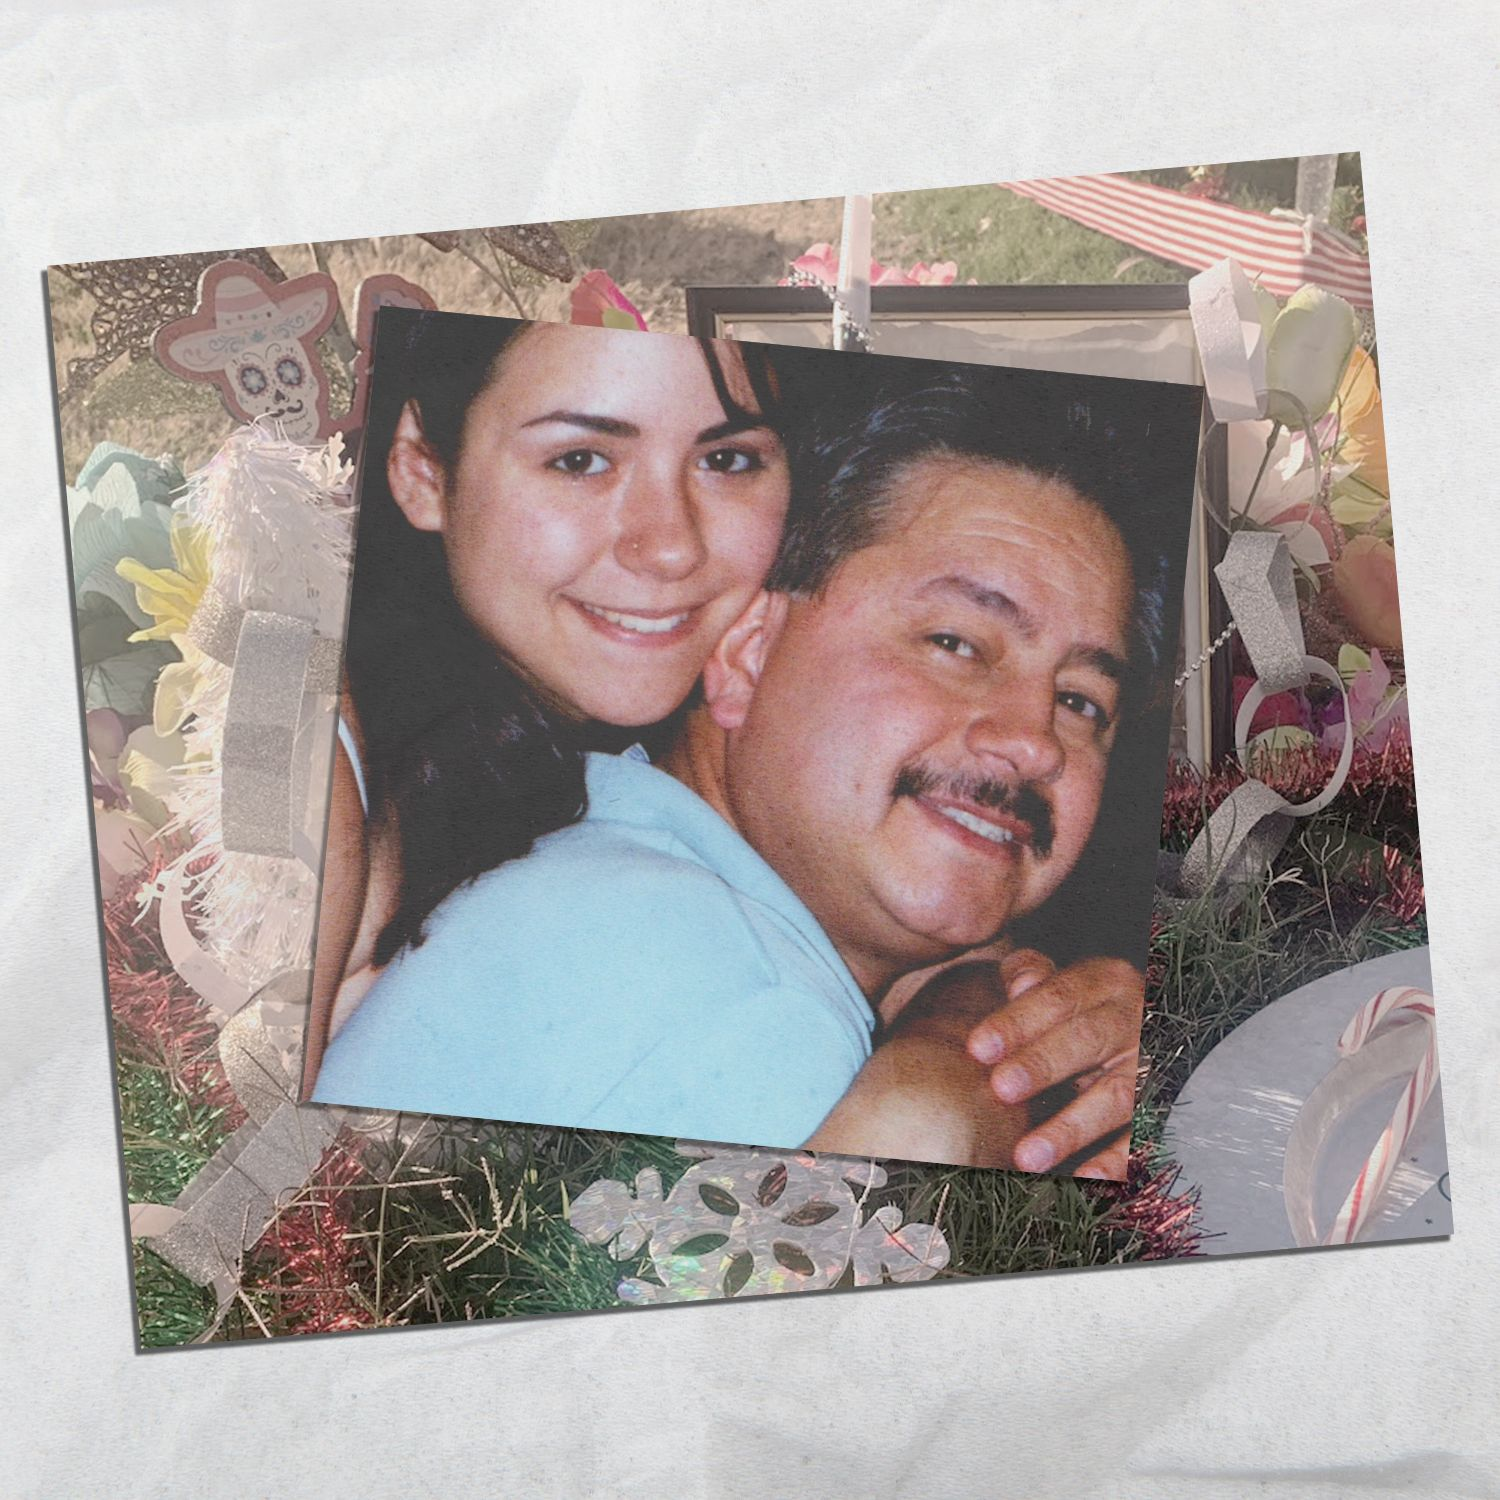 Kristin Urquiza Wants Her Dad's Death to Mean Something